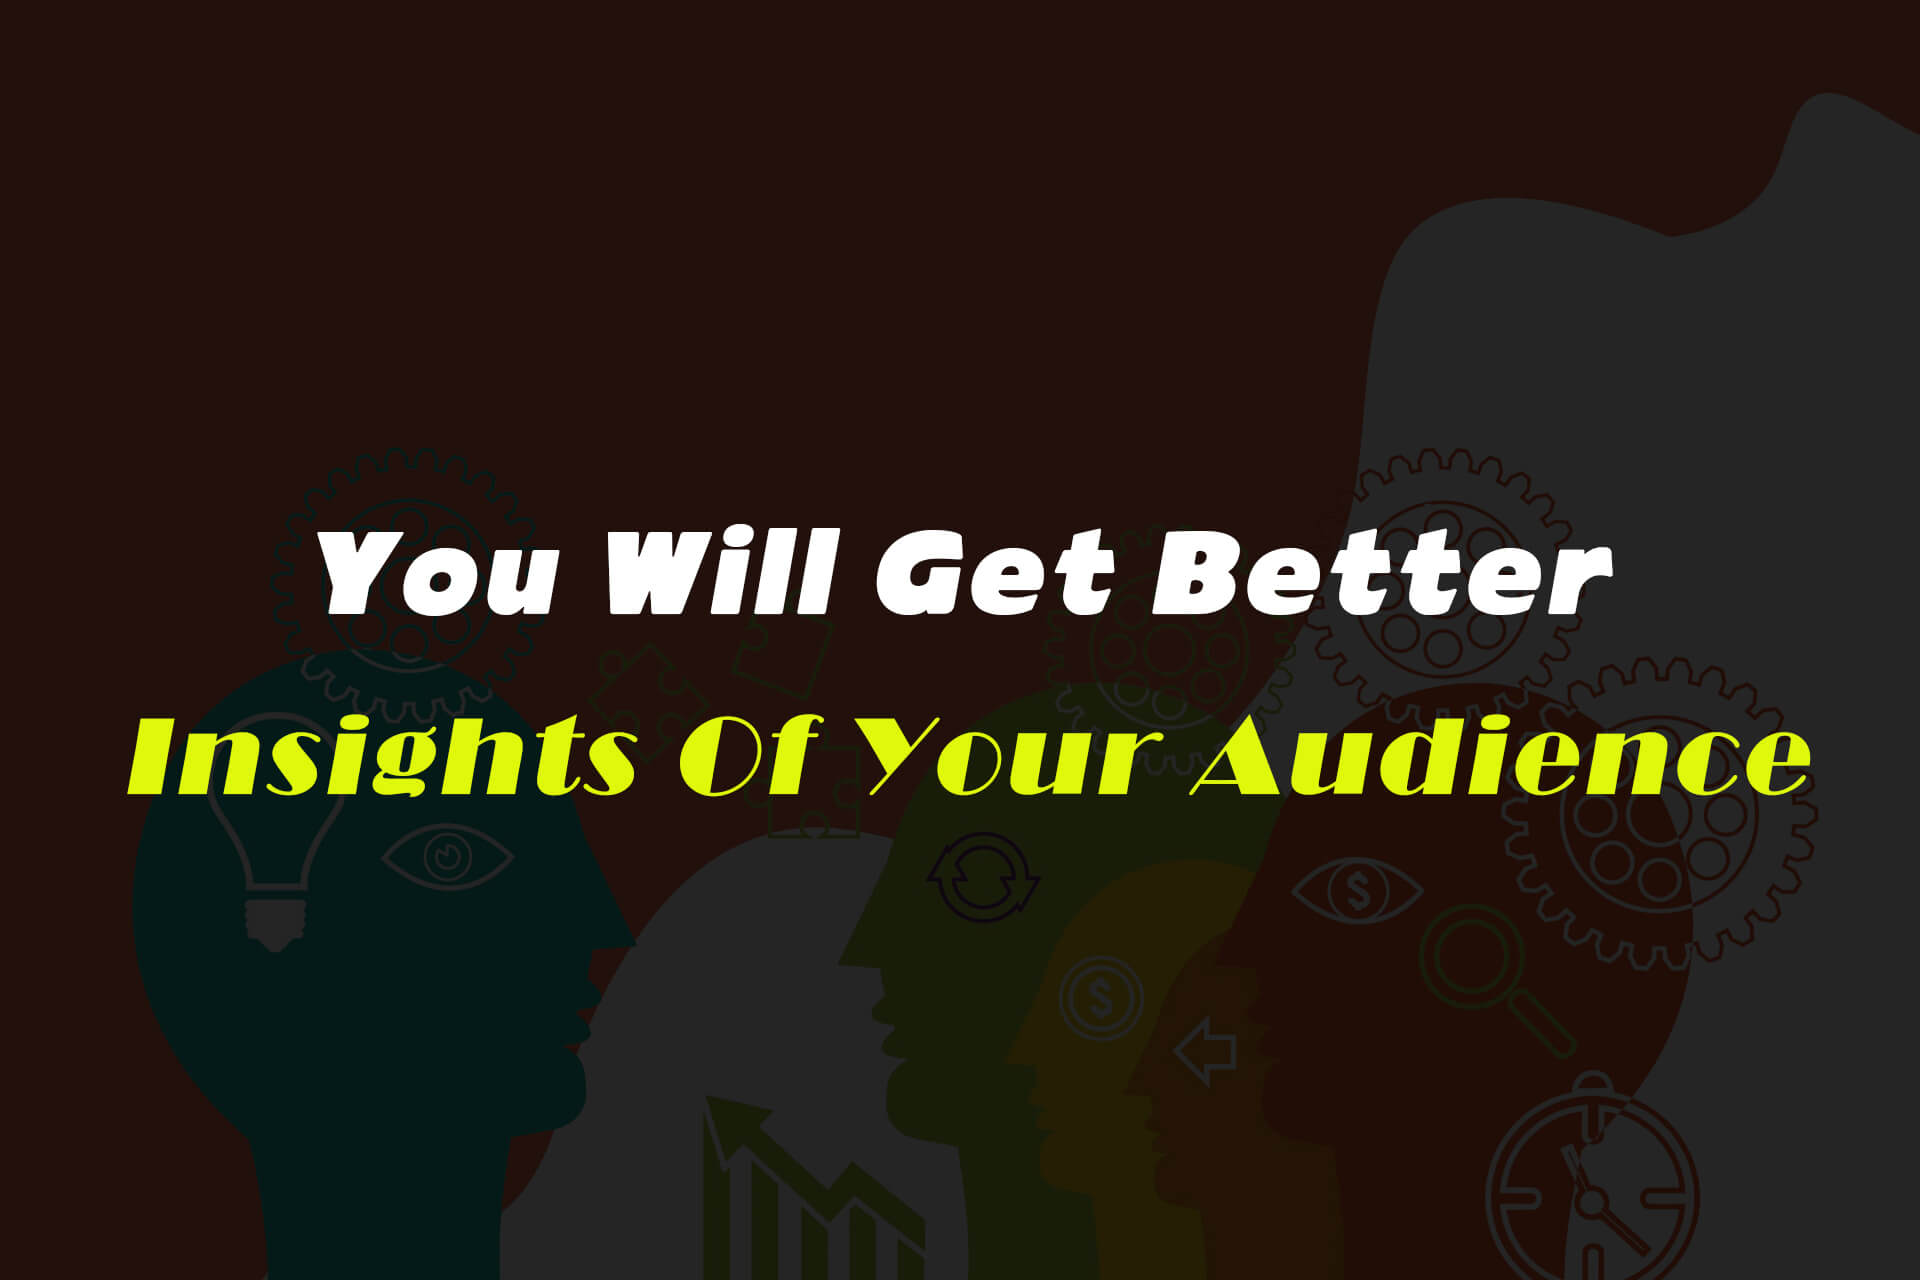 You, Will, Get Better Insights Of Your Audience